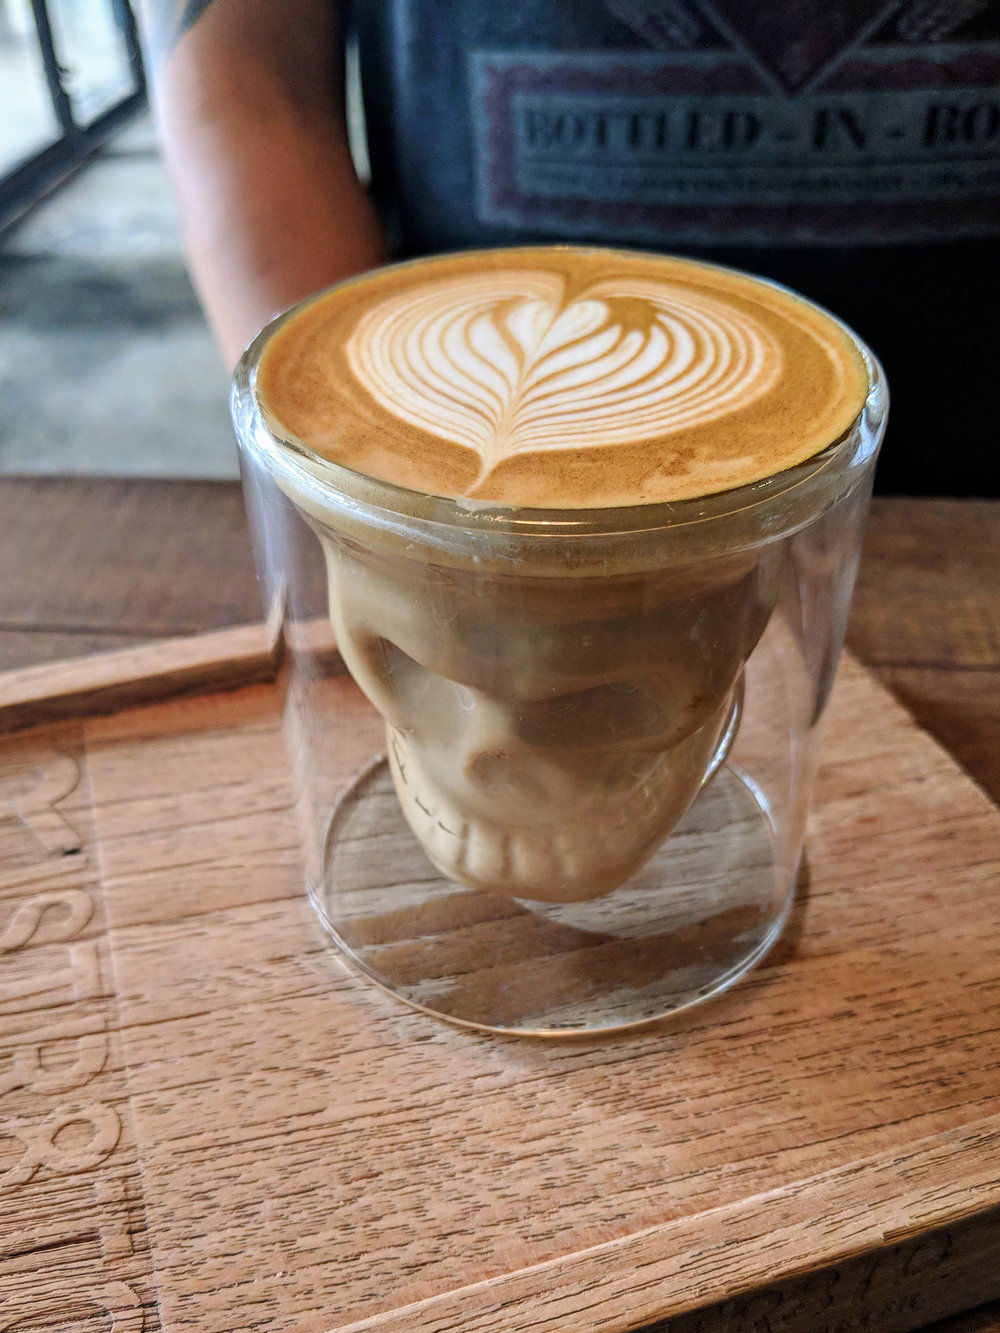 Fun glass for my latte at Ristr8o (didn't shell out for the fancy latte art)